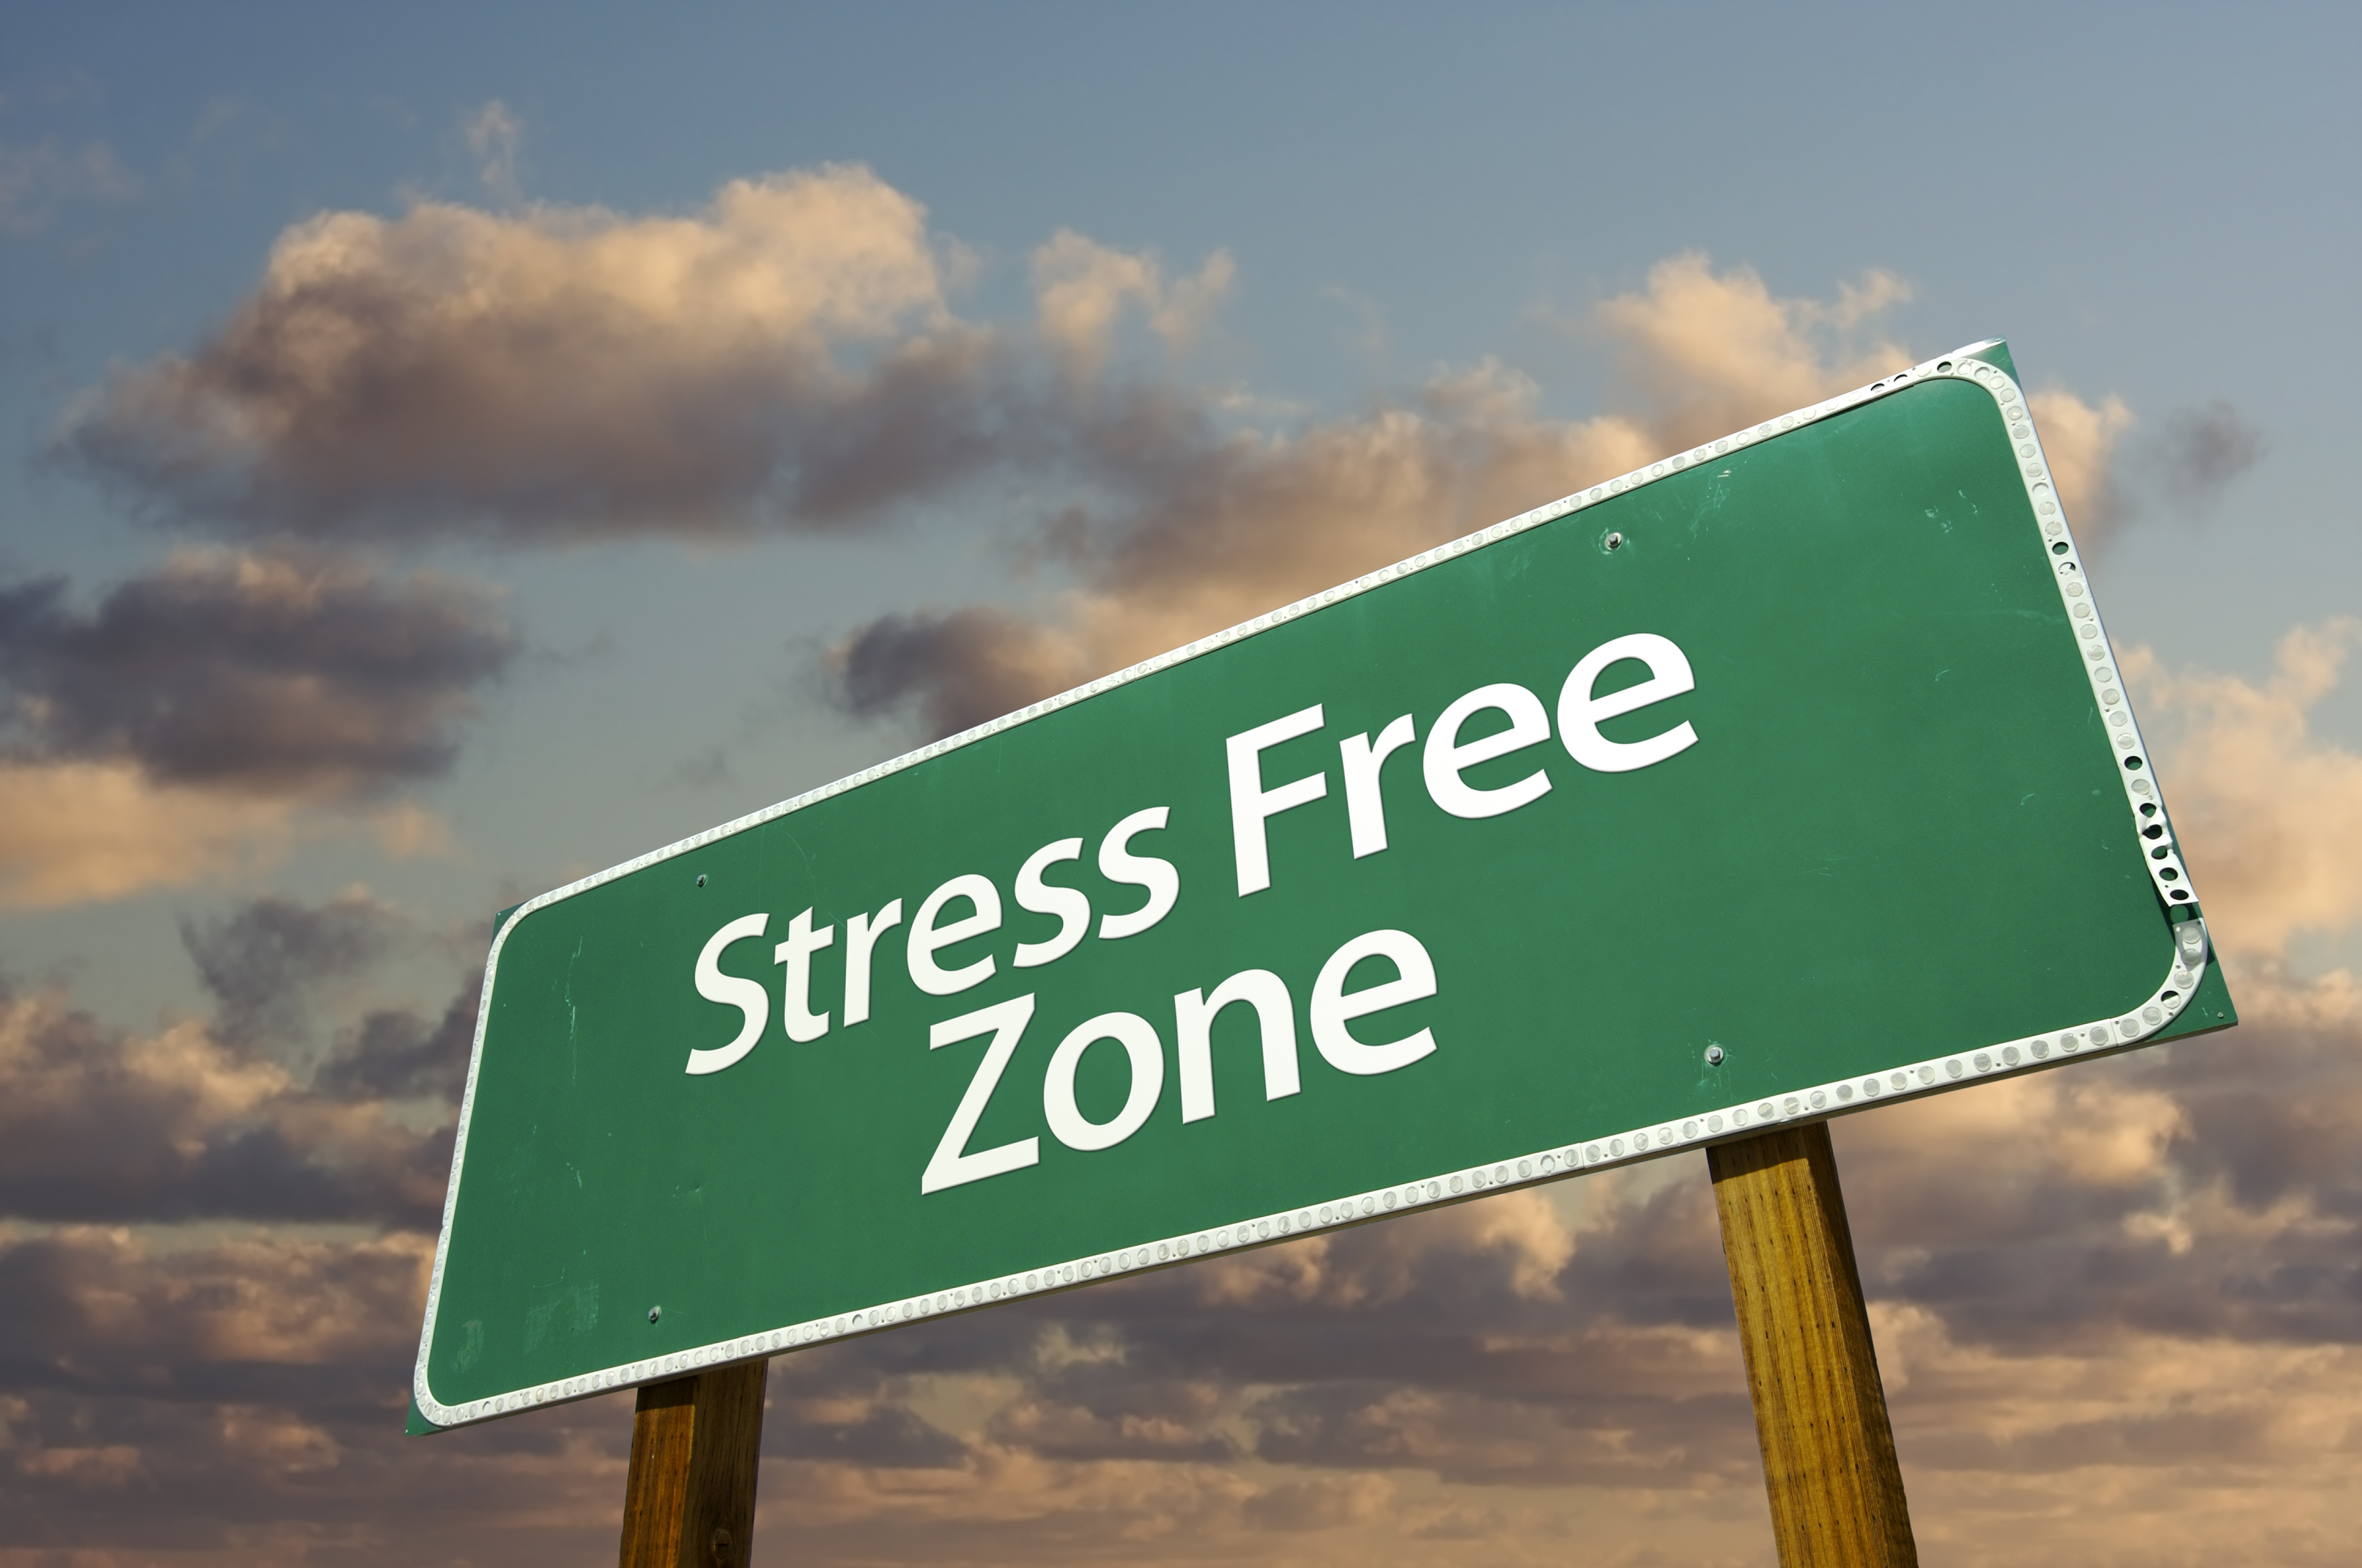 stress-free-zone-sign_3600